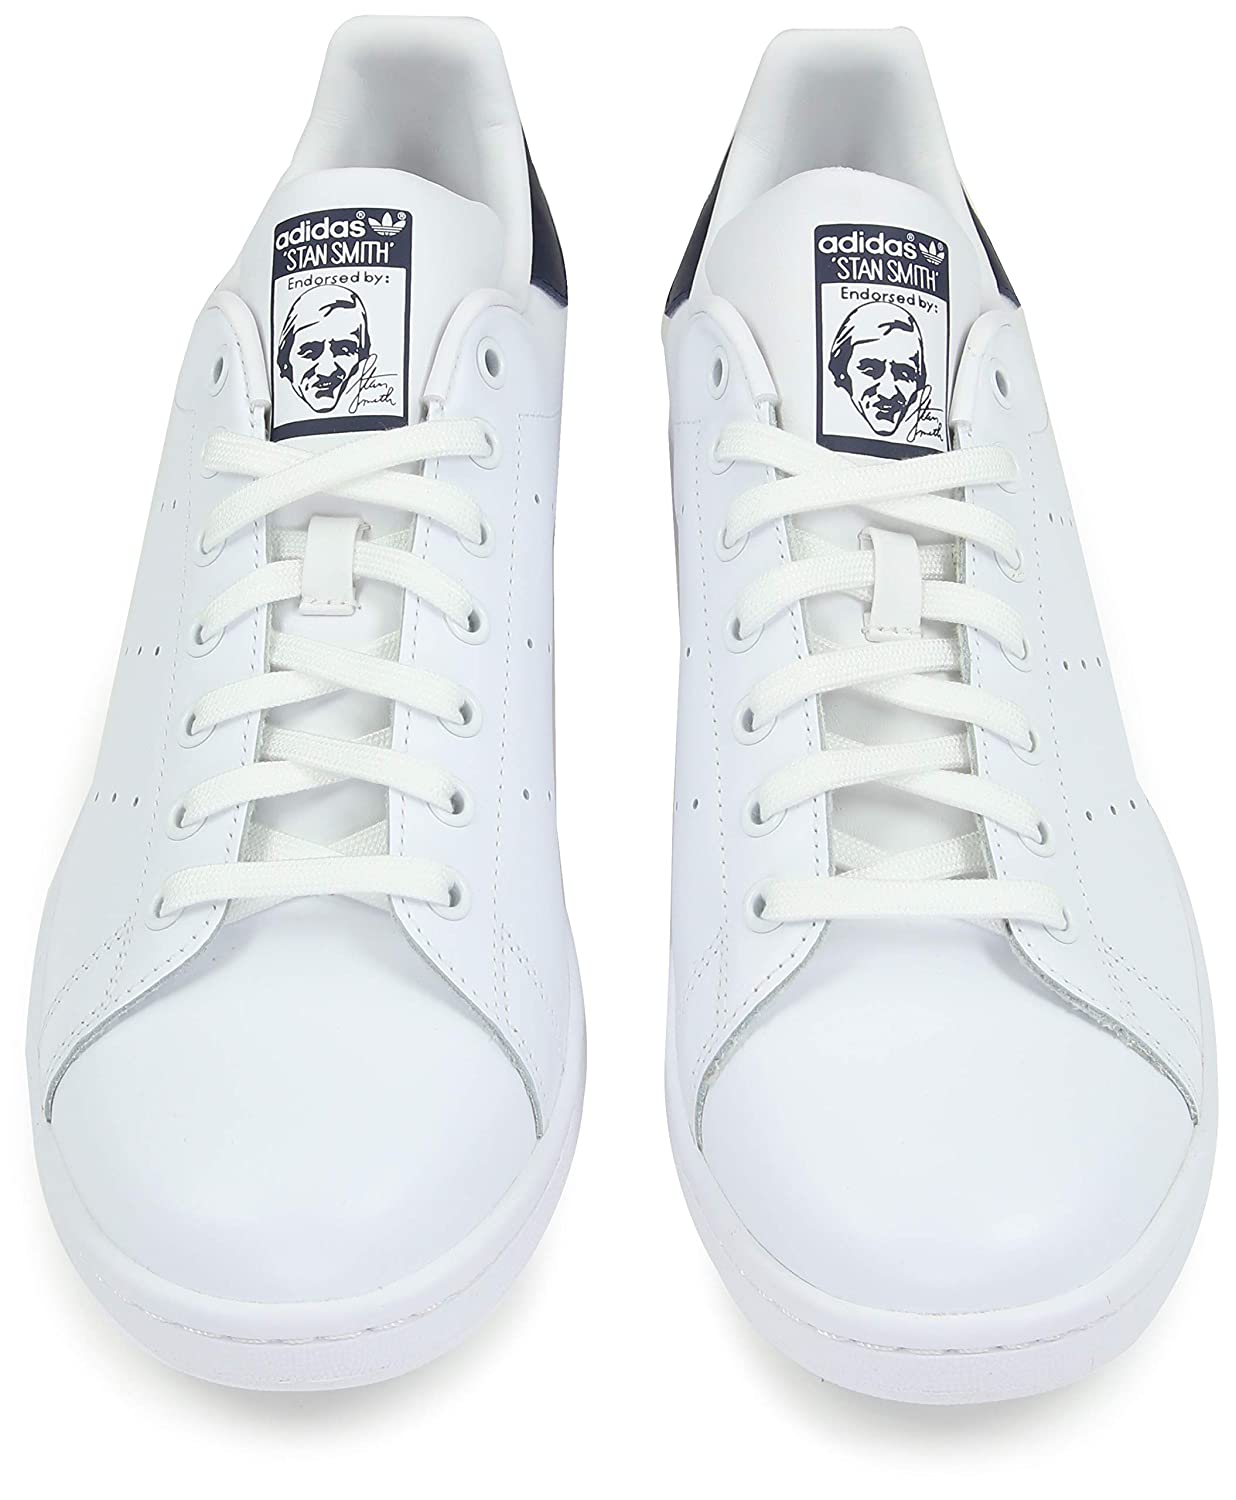 adidas Originals Originals Men s Stan Smith Cwhite and Dkblue Sneakers - 7  UK India (40.67 EU) (M20325)  Buy Online at Low Prices in India - Amazon.in 8146077f5a8e